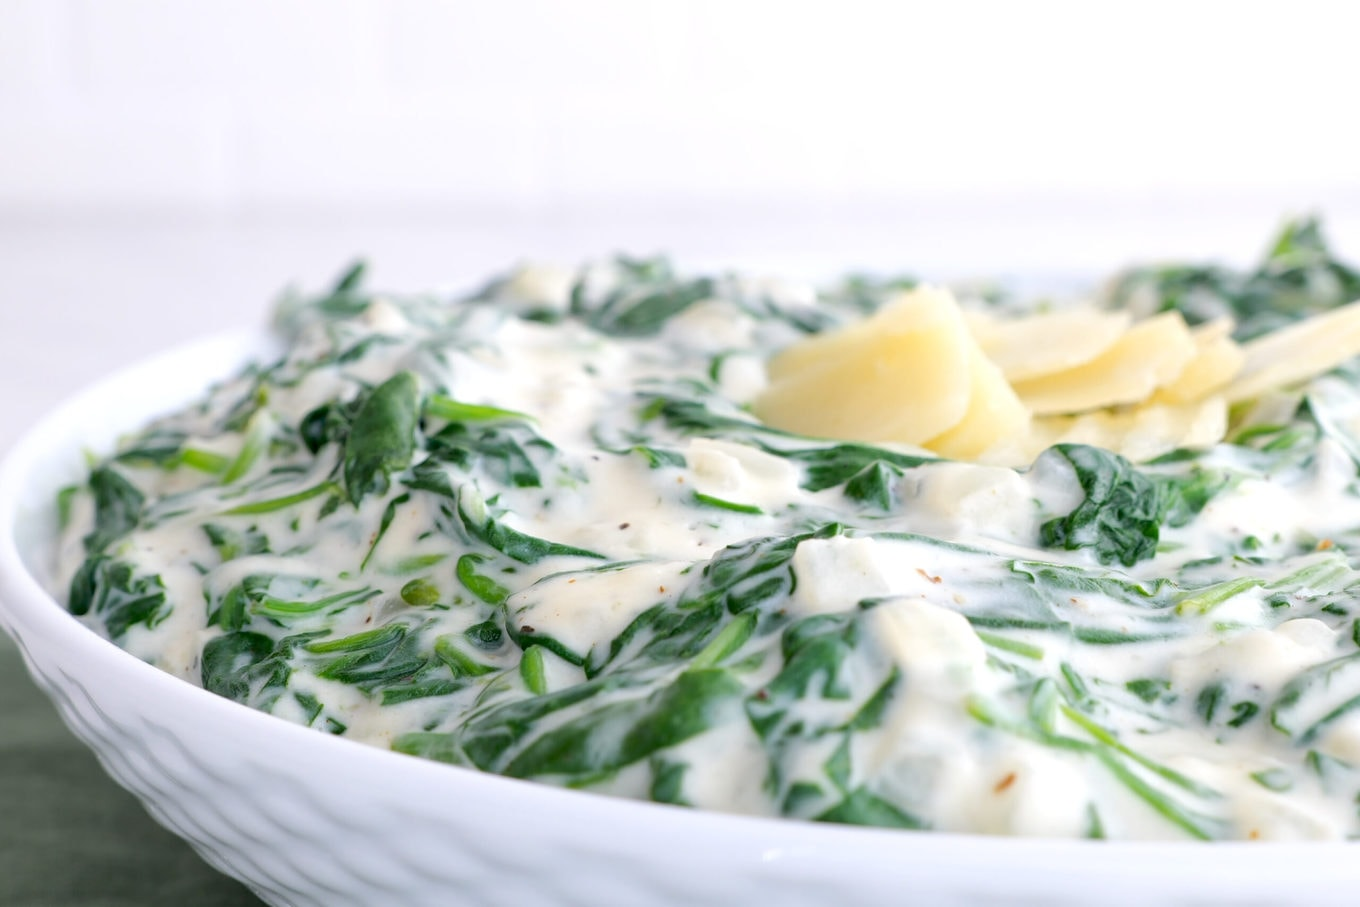 Morton's Steakhouse Creamed Spinach in bowl with parmesan garnish